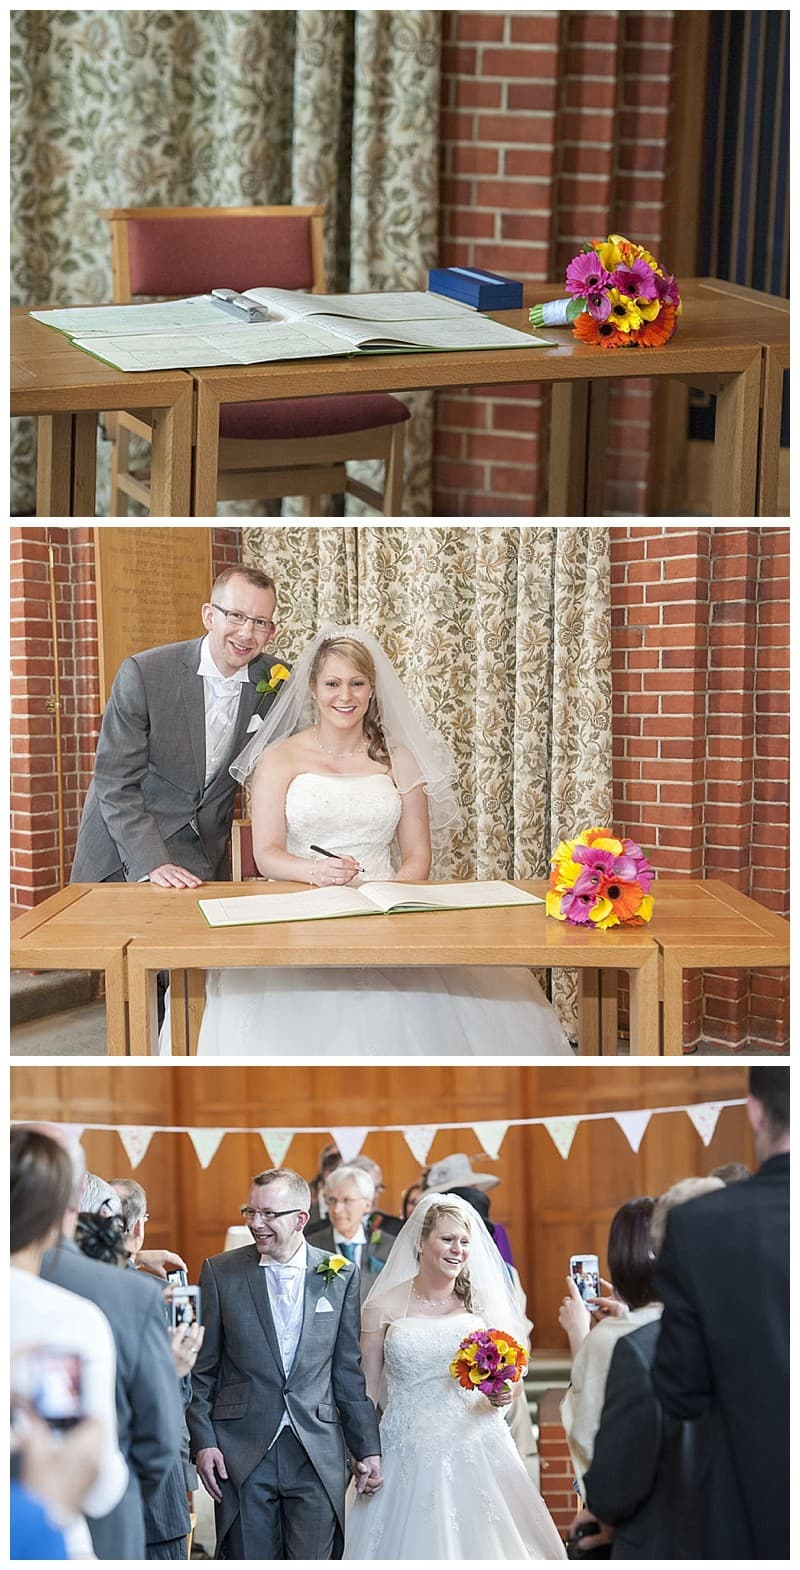 Steve & Hannah, Silvermere Golf Course Wedding, Benjamin Wetherall Photography0024